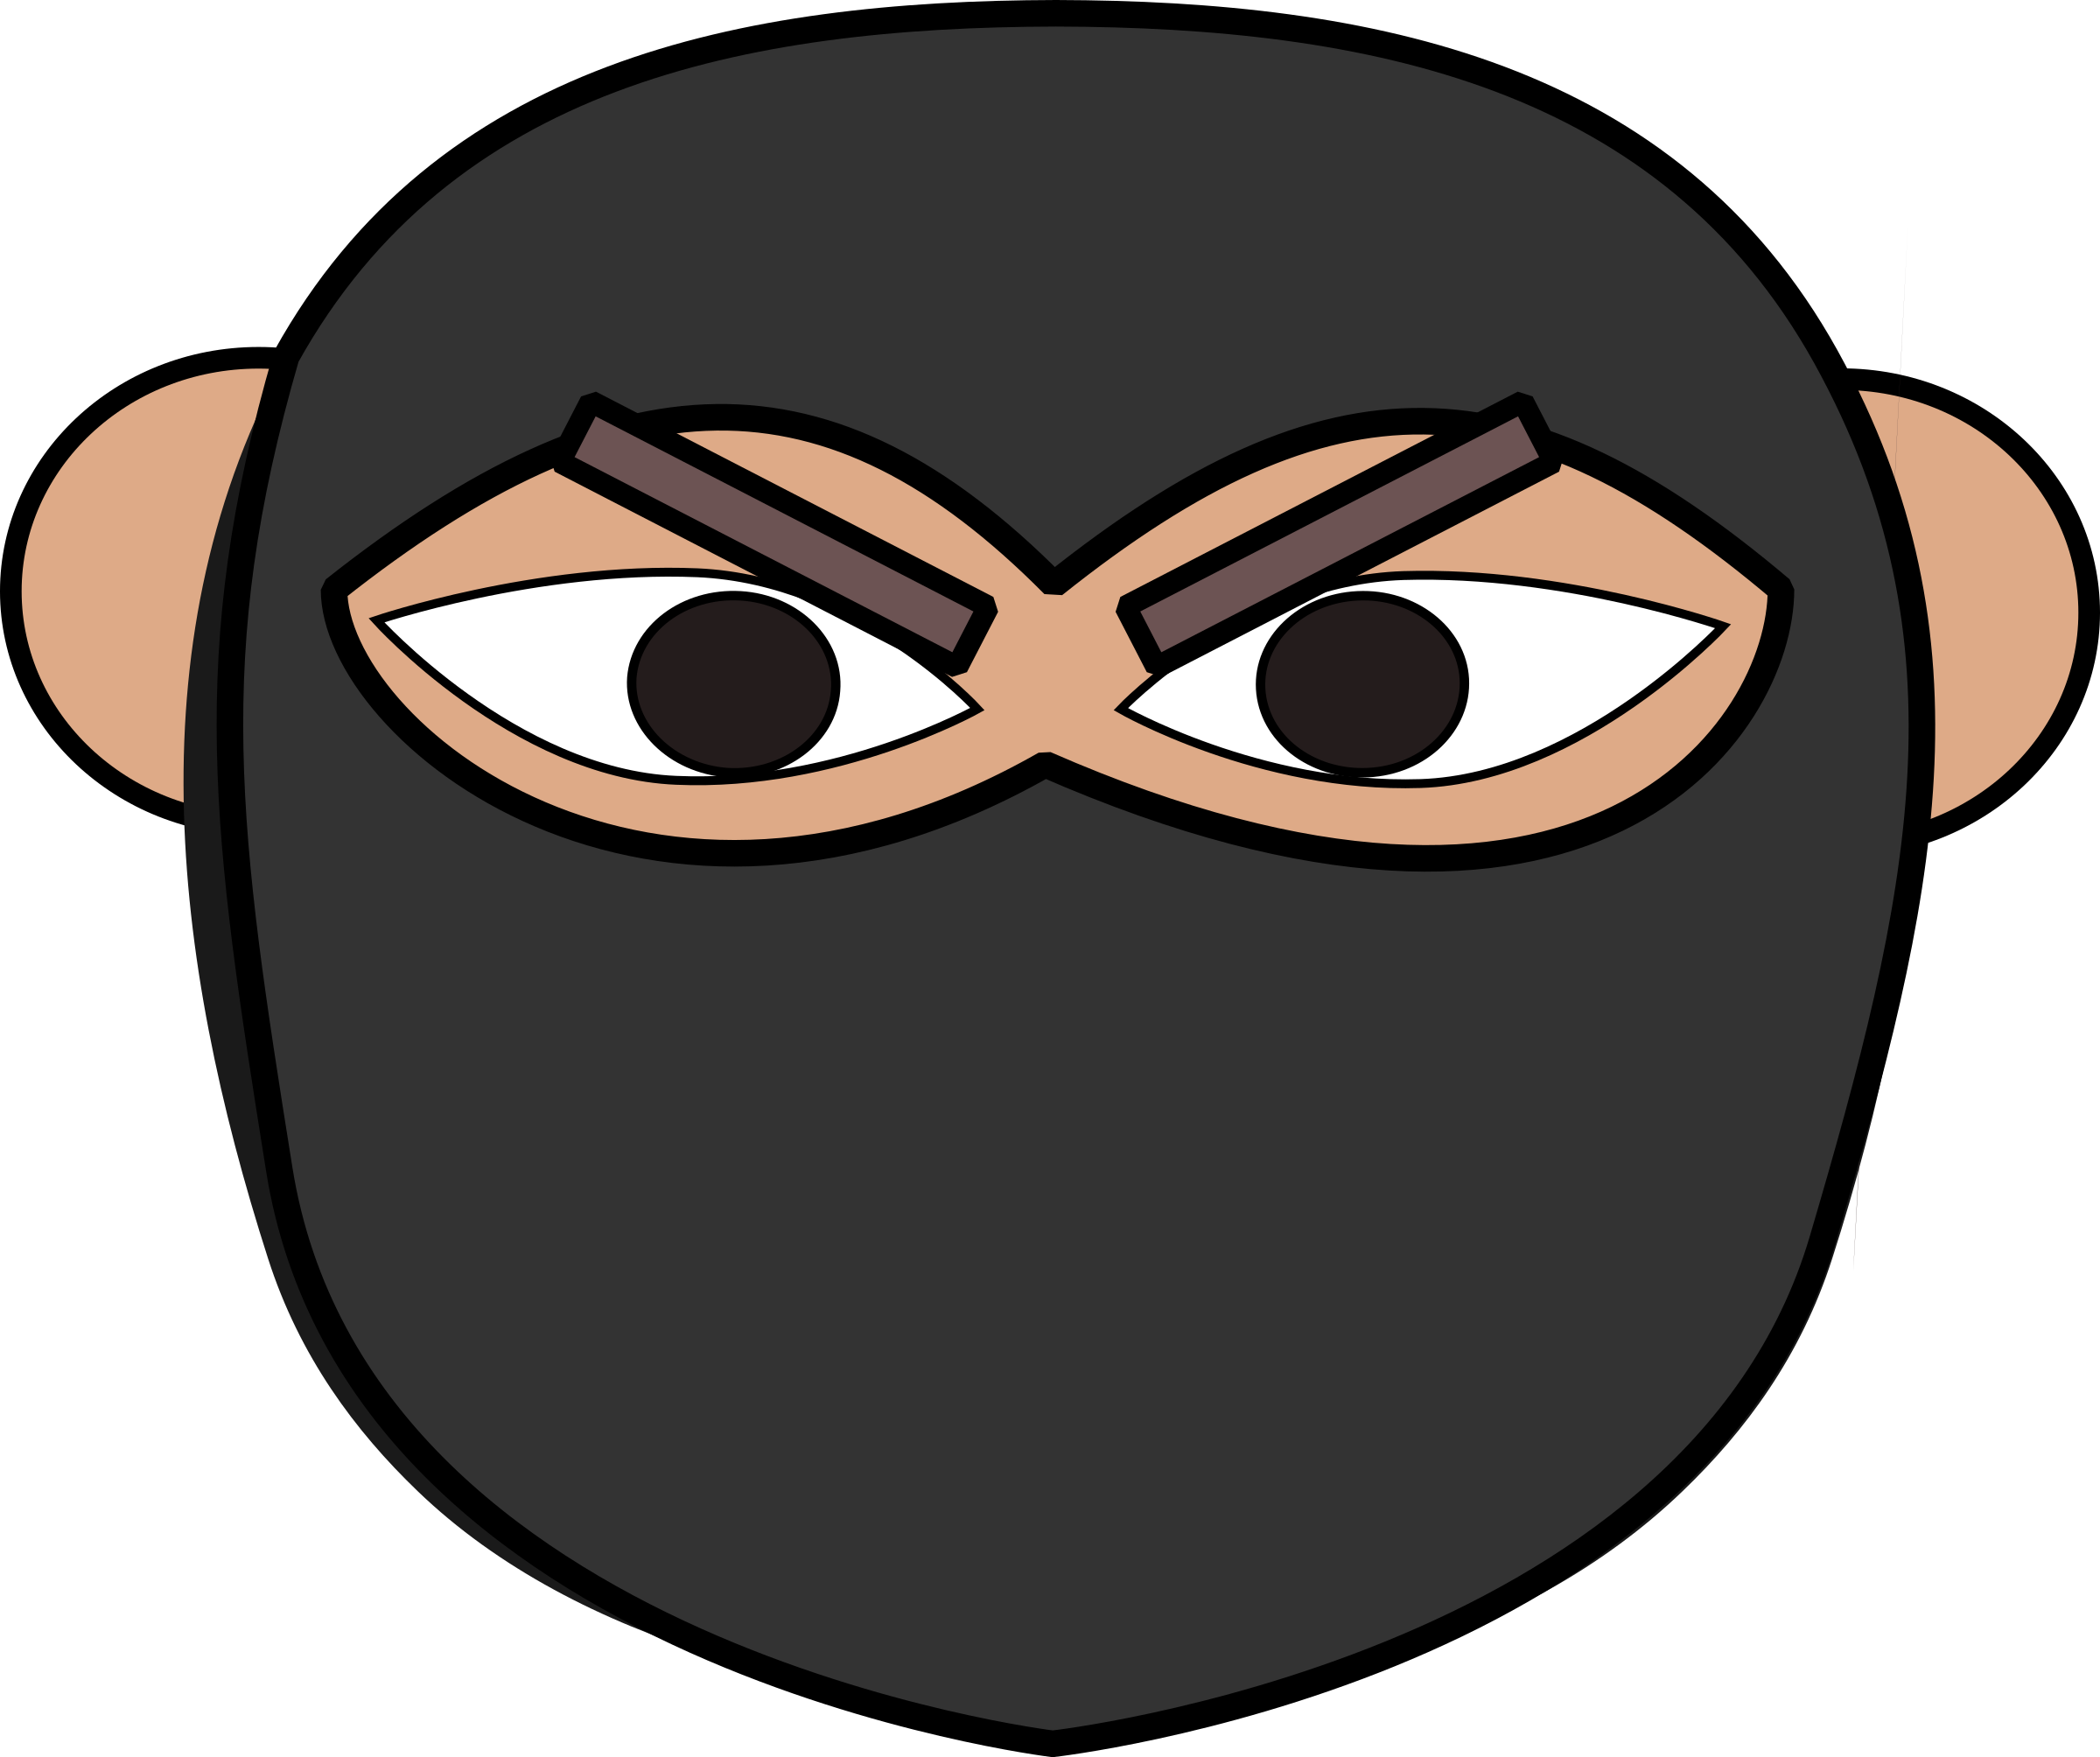 Ninja head png. Icons free and downloads